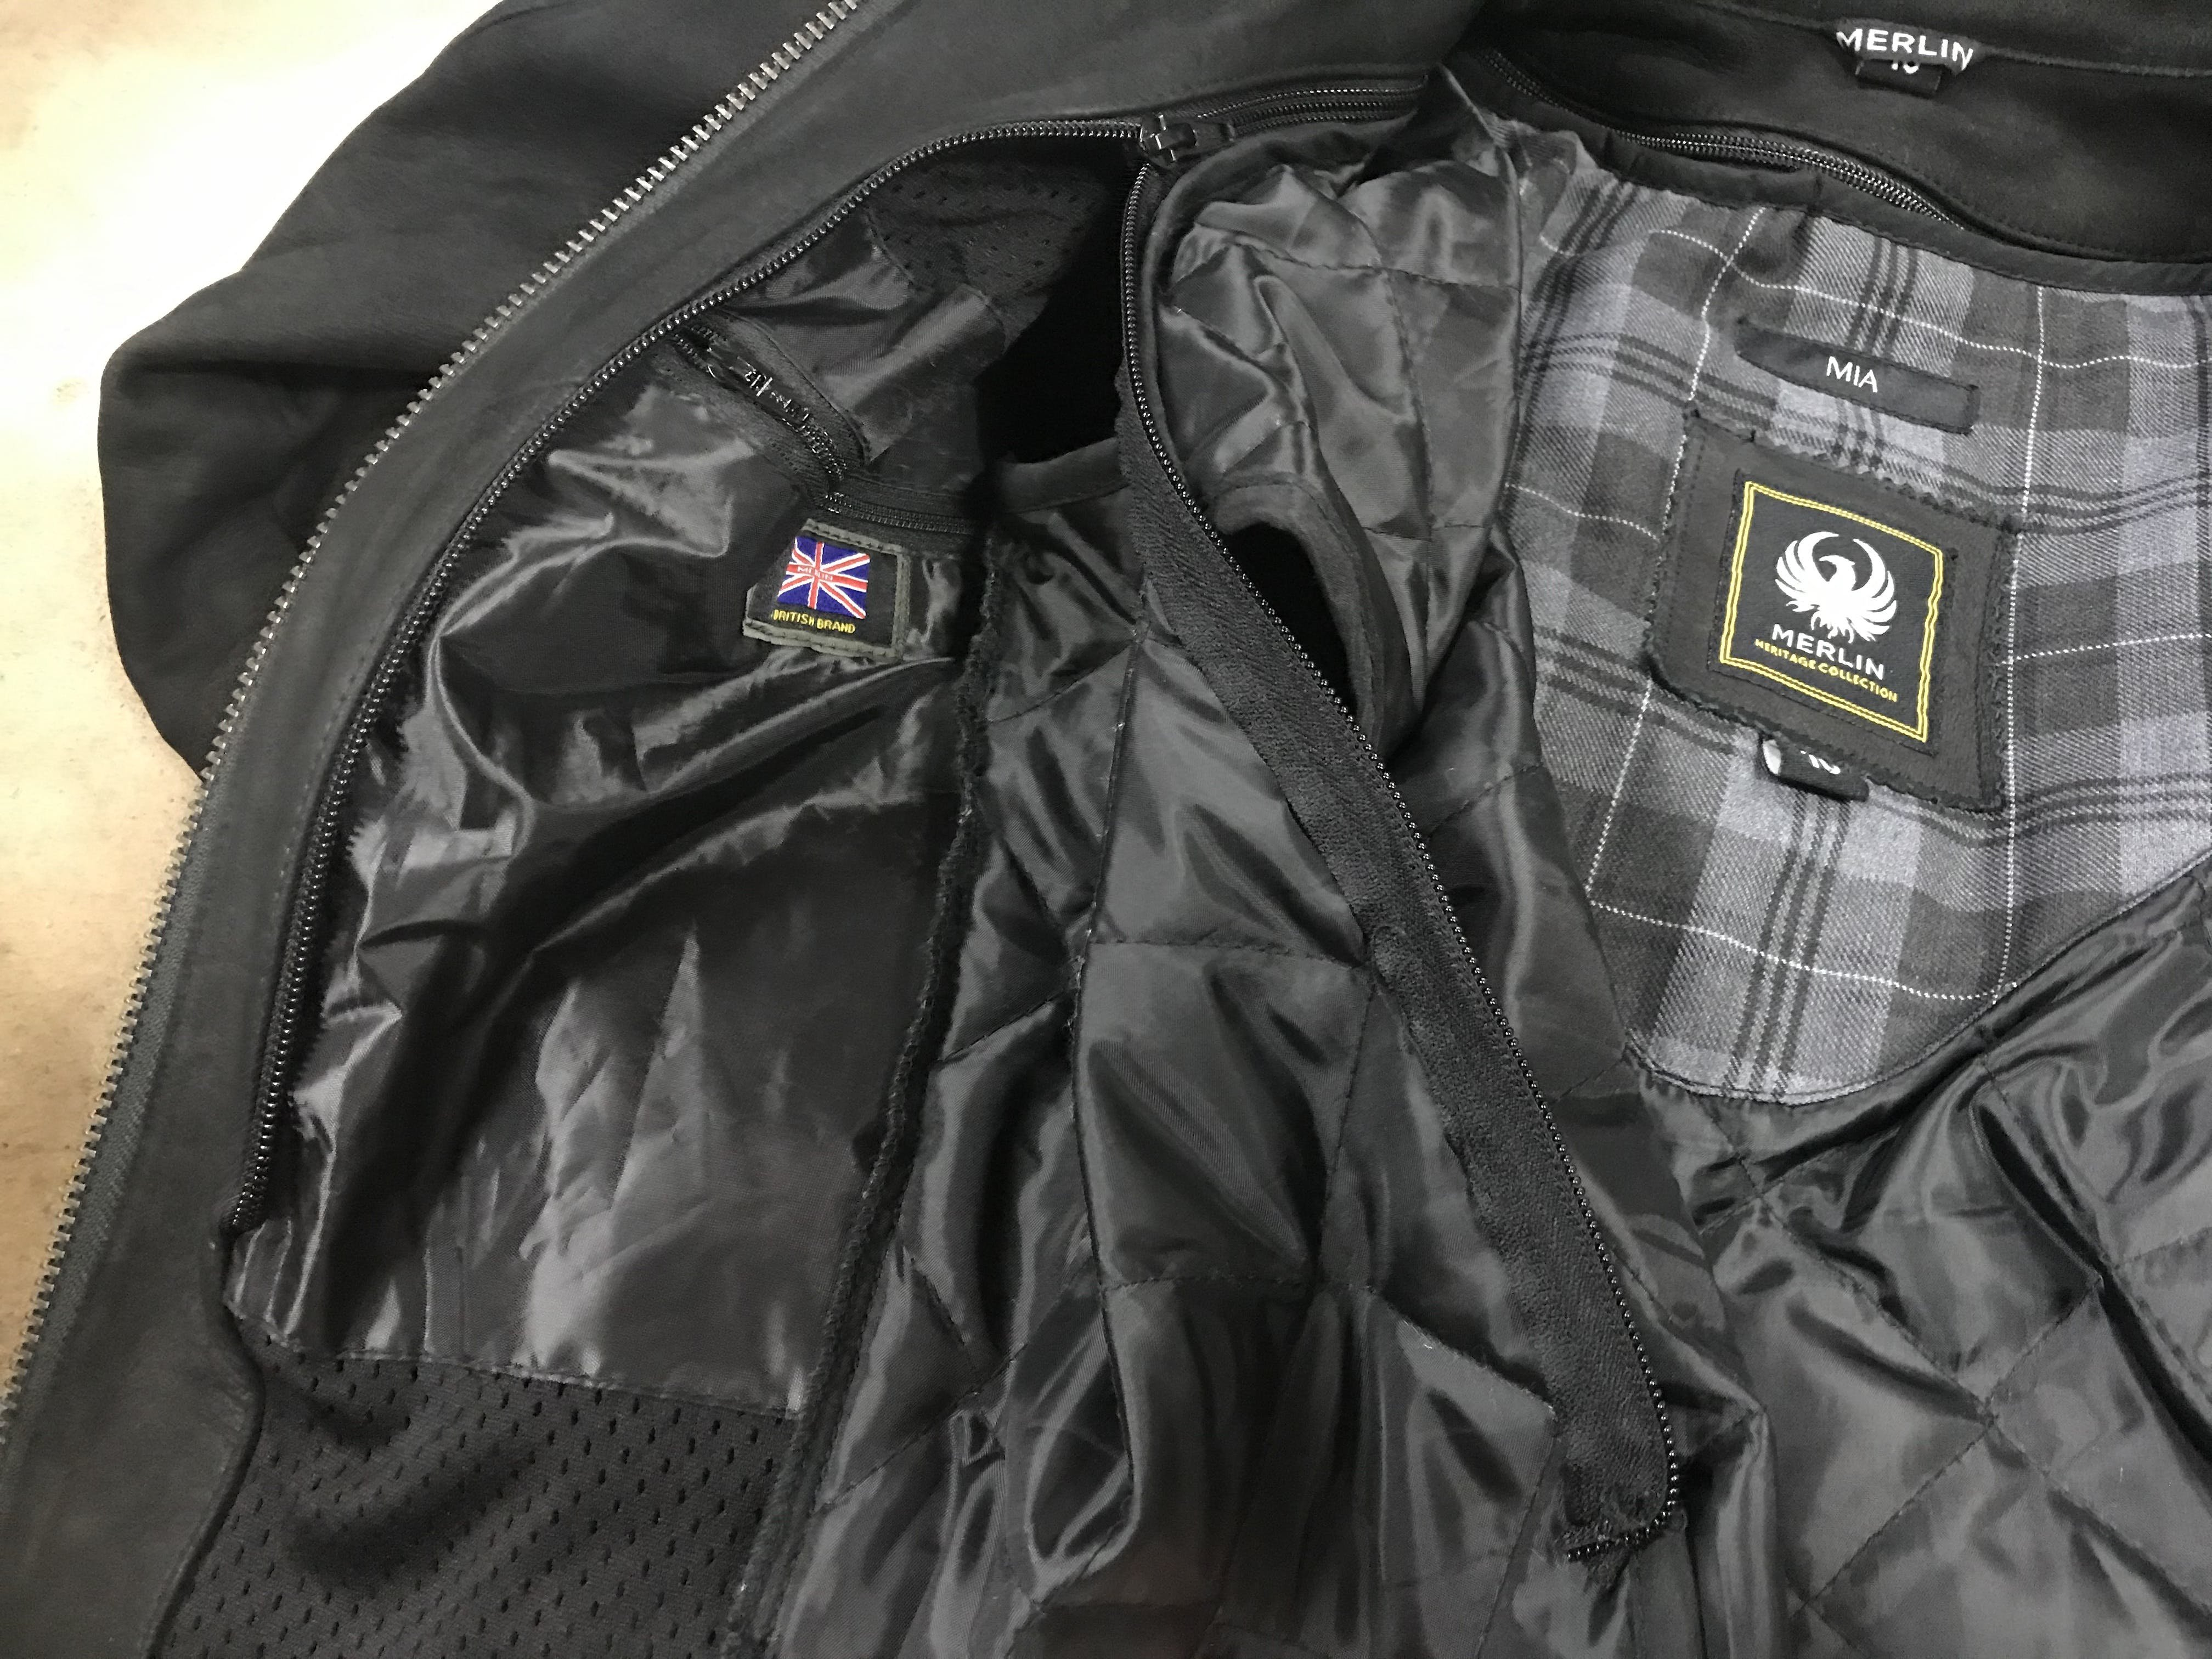 The zip on the internal liner half zipped open on the Merlin Mia leather jacket